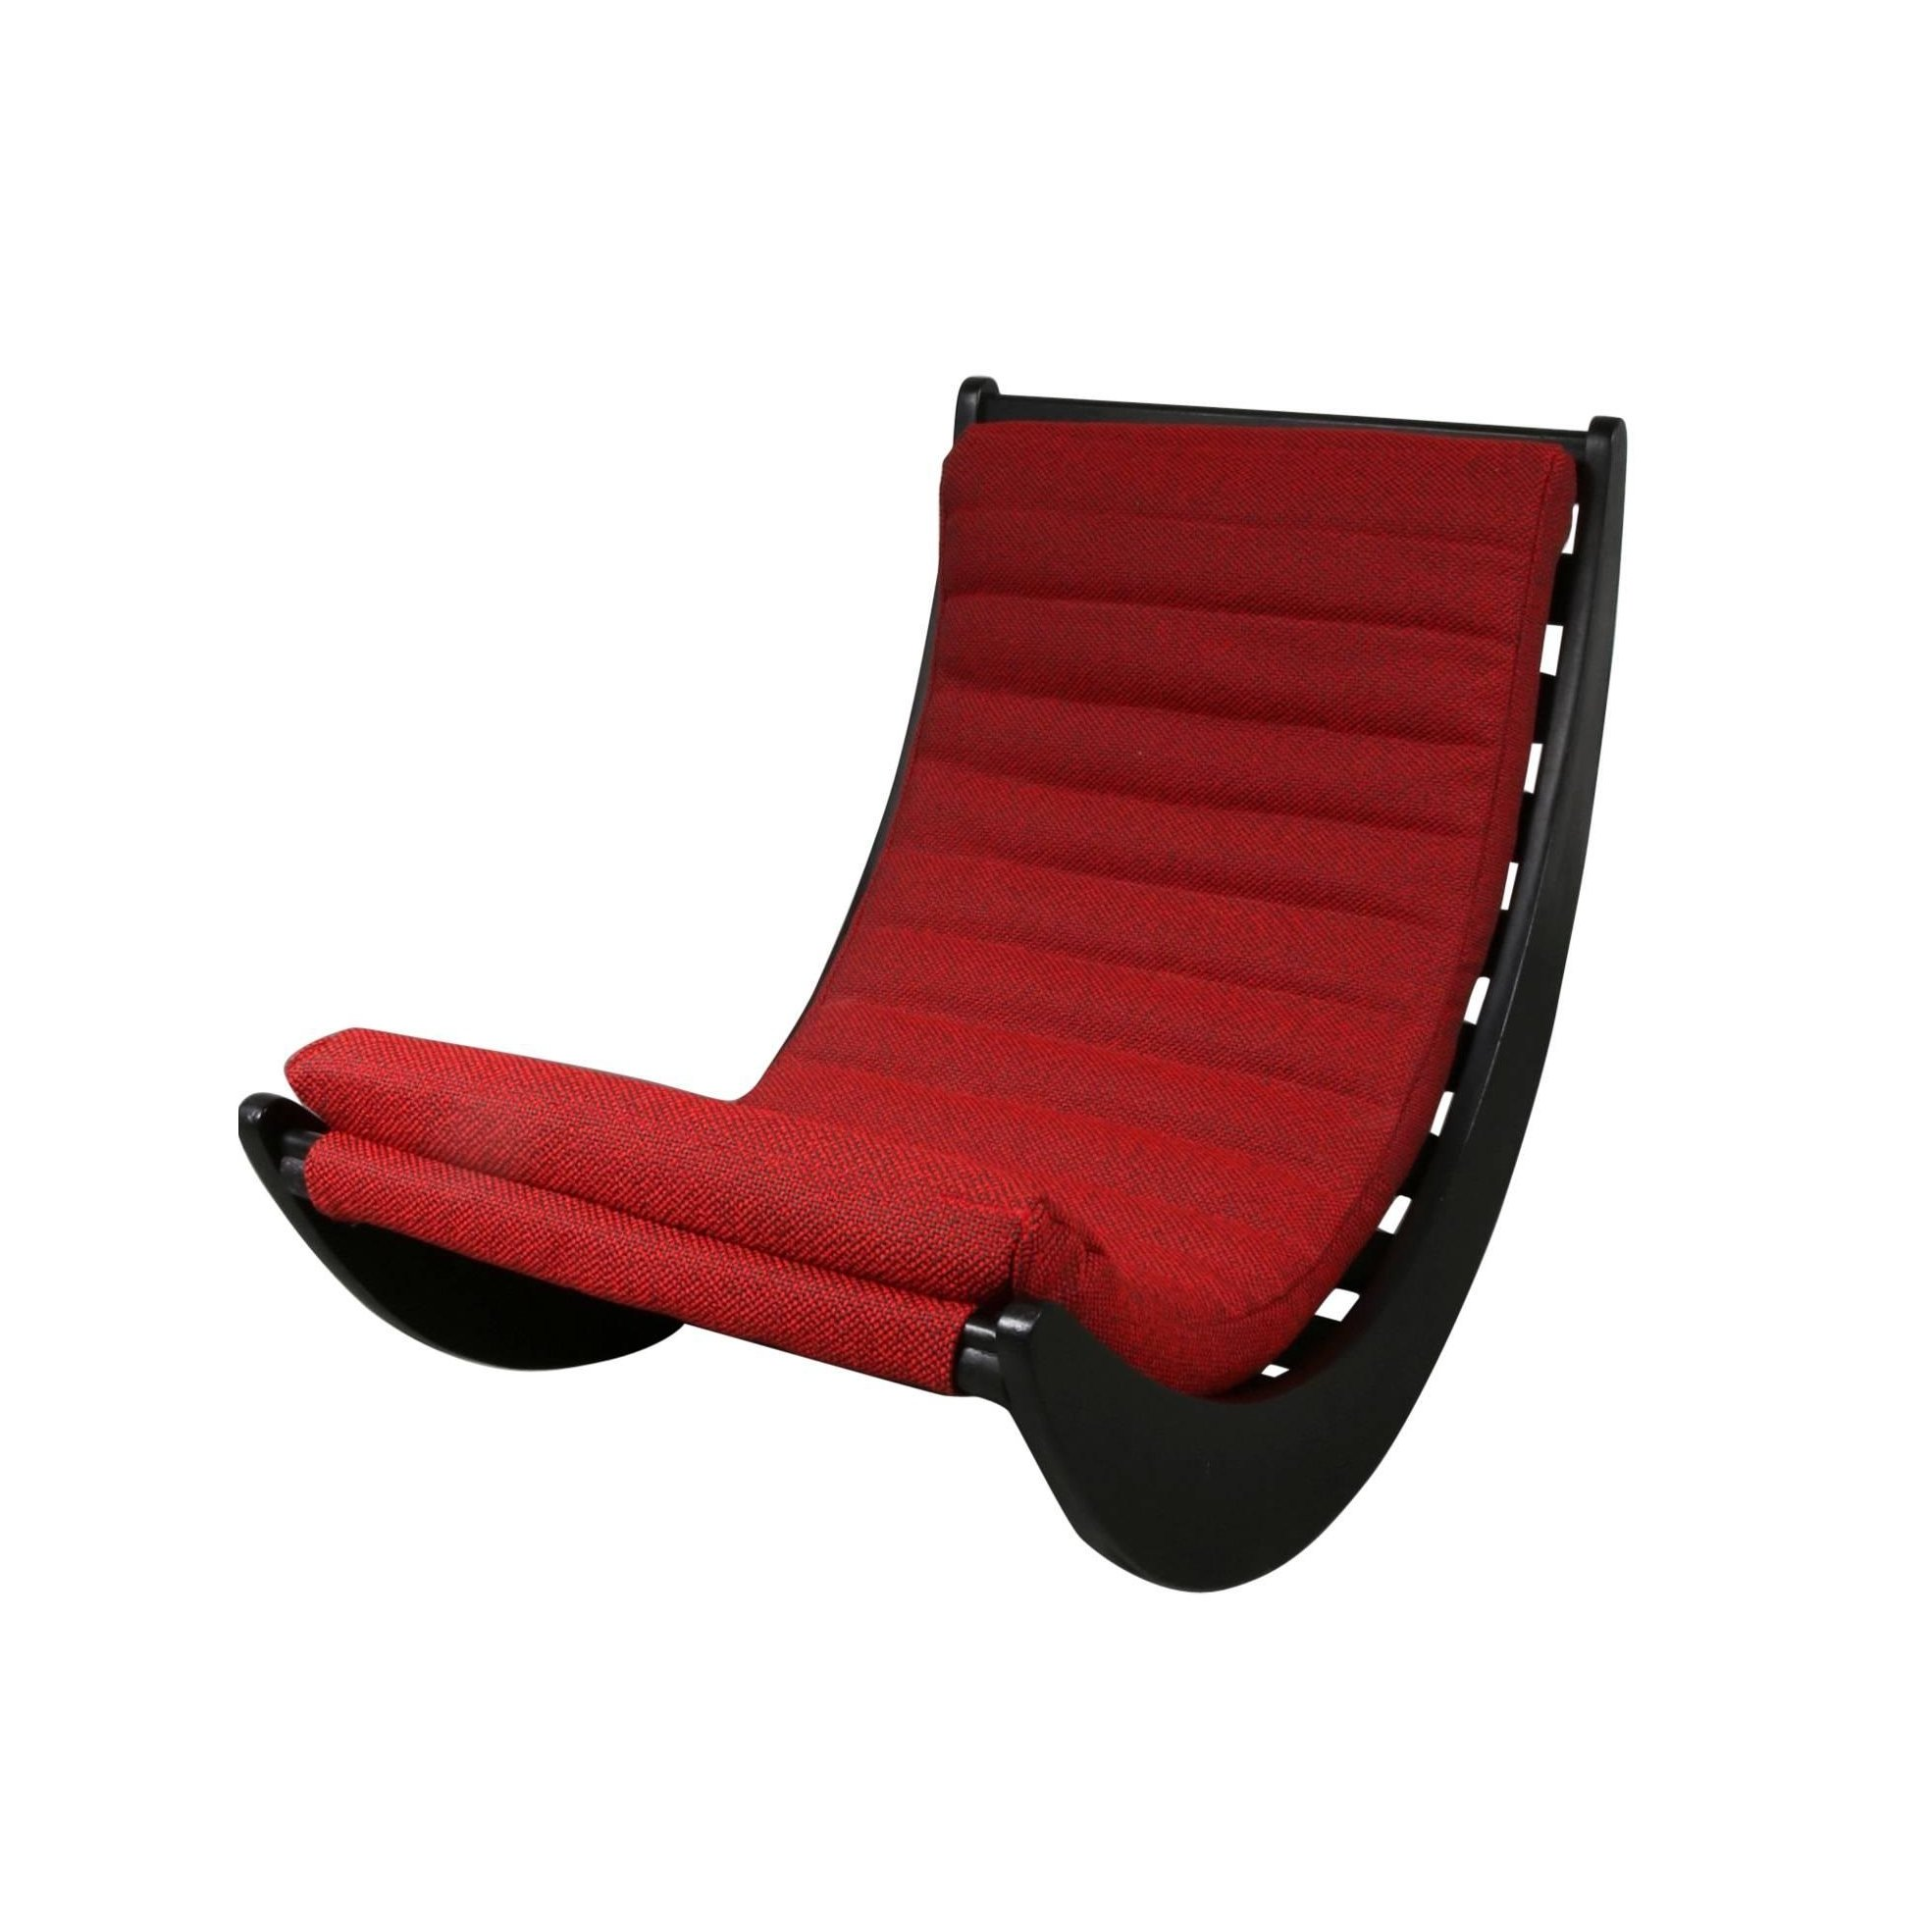 Chaise Panton Verner Panton rocking chairverner panton for rosenthal, germany 1974